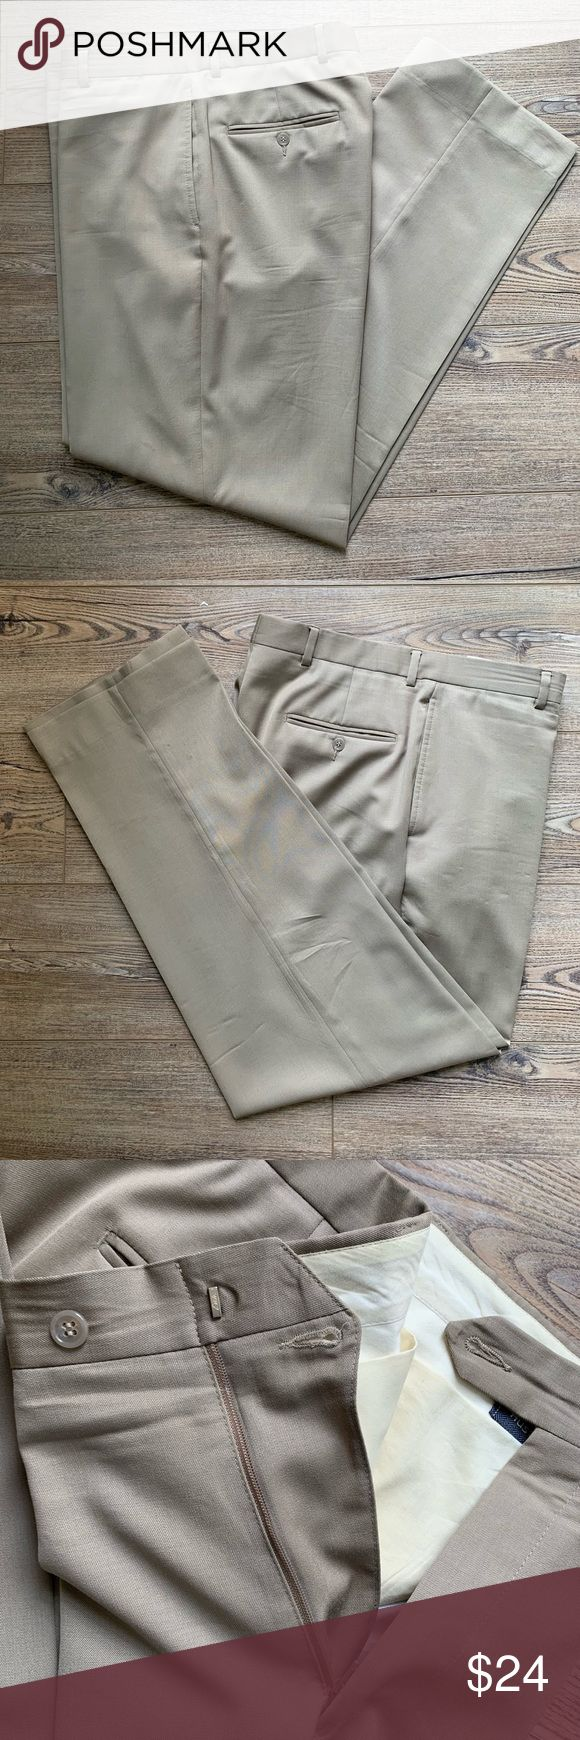 Guc Austin Reed Super 100s Dress Pants Austin Reed Dress Pants Summer Wool